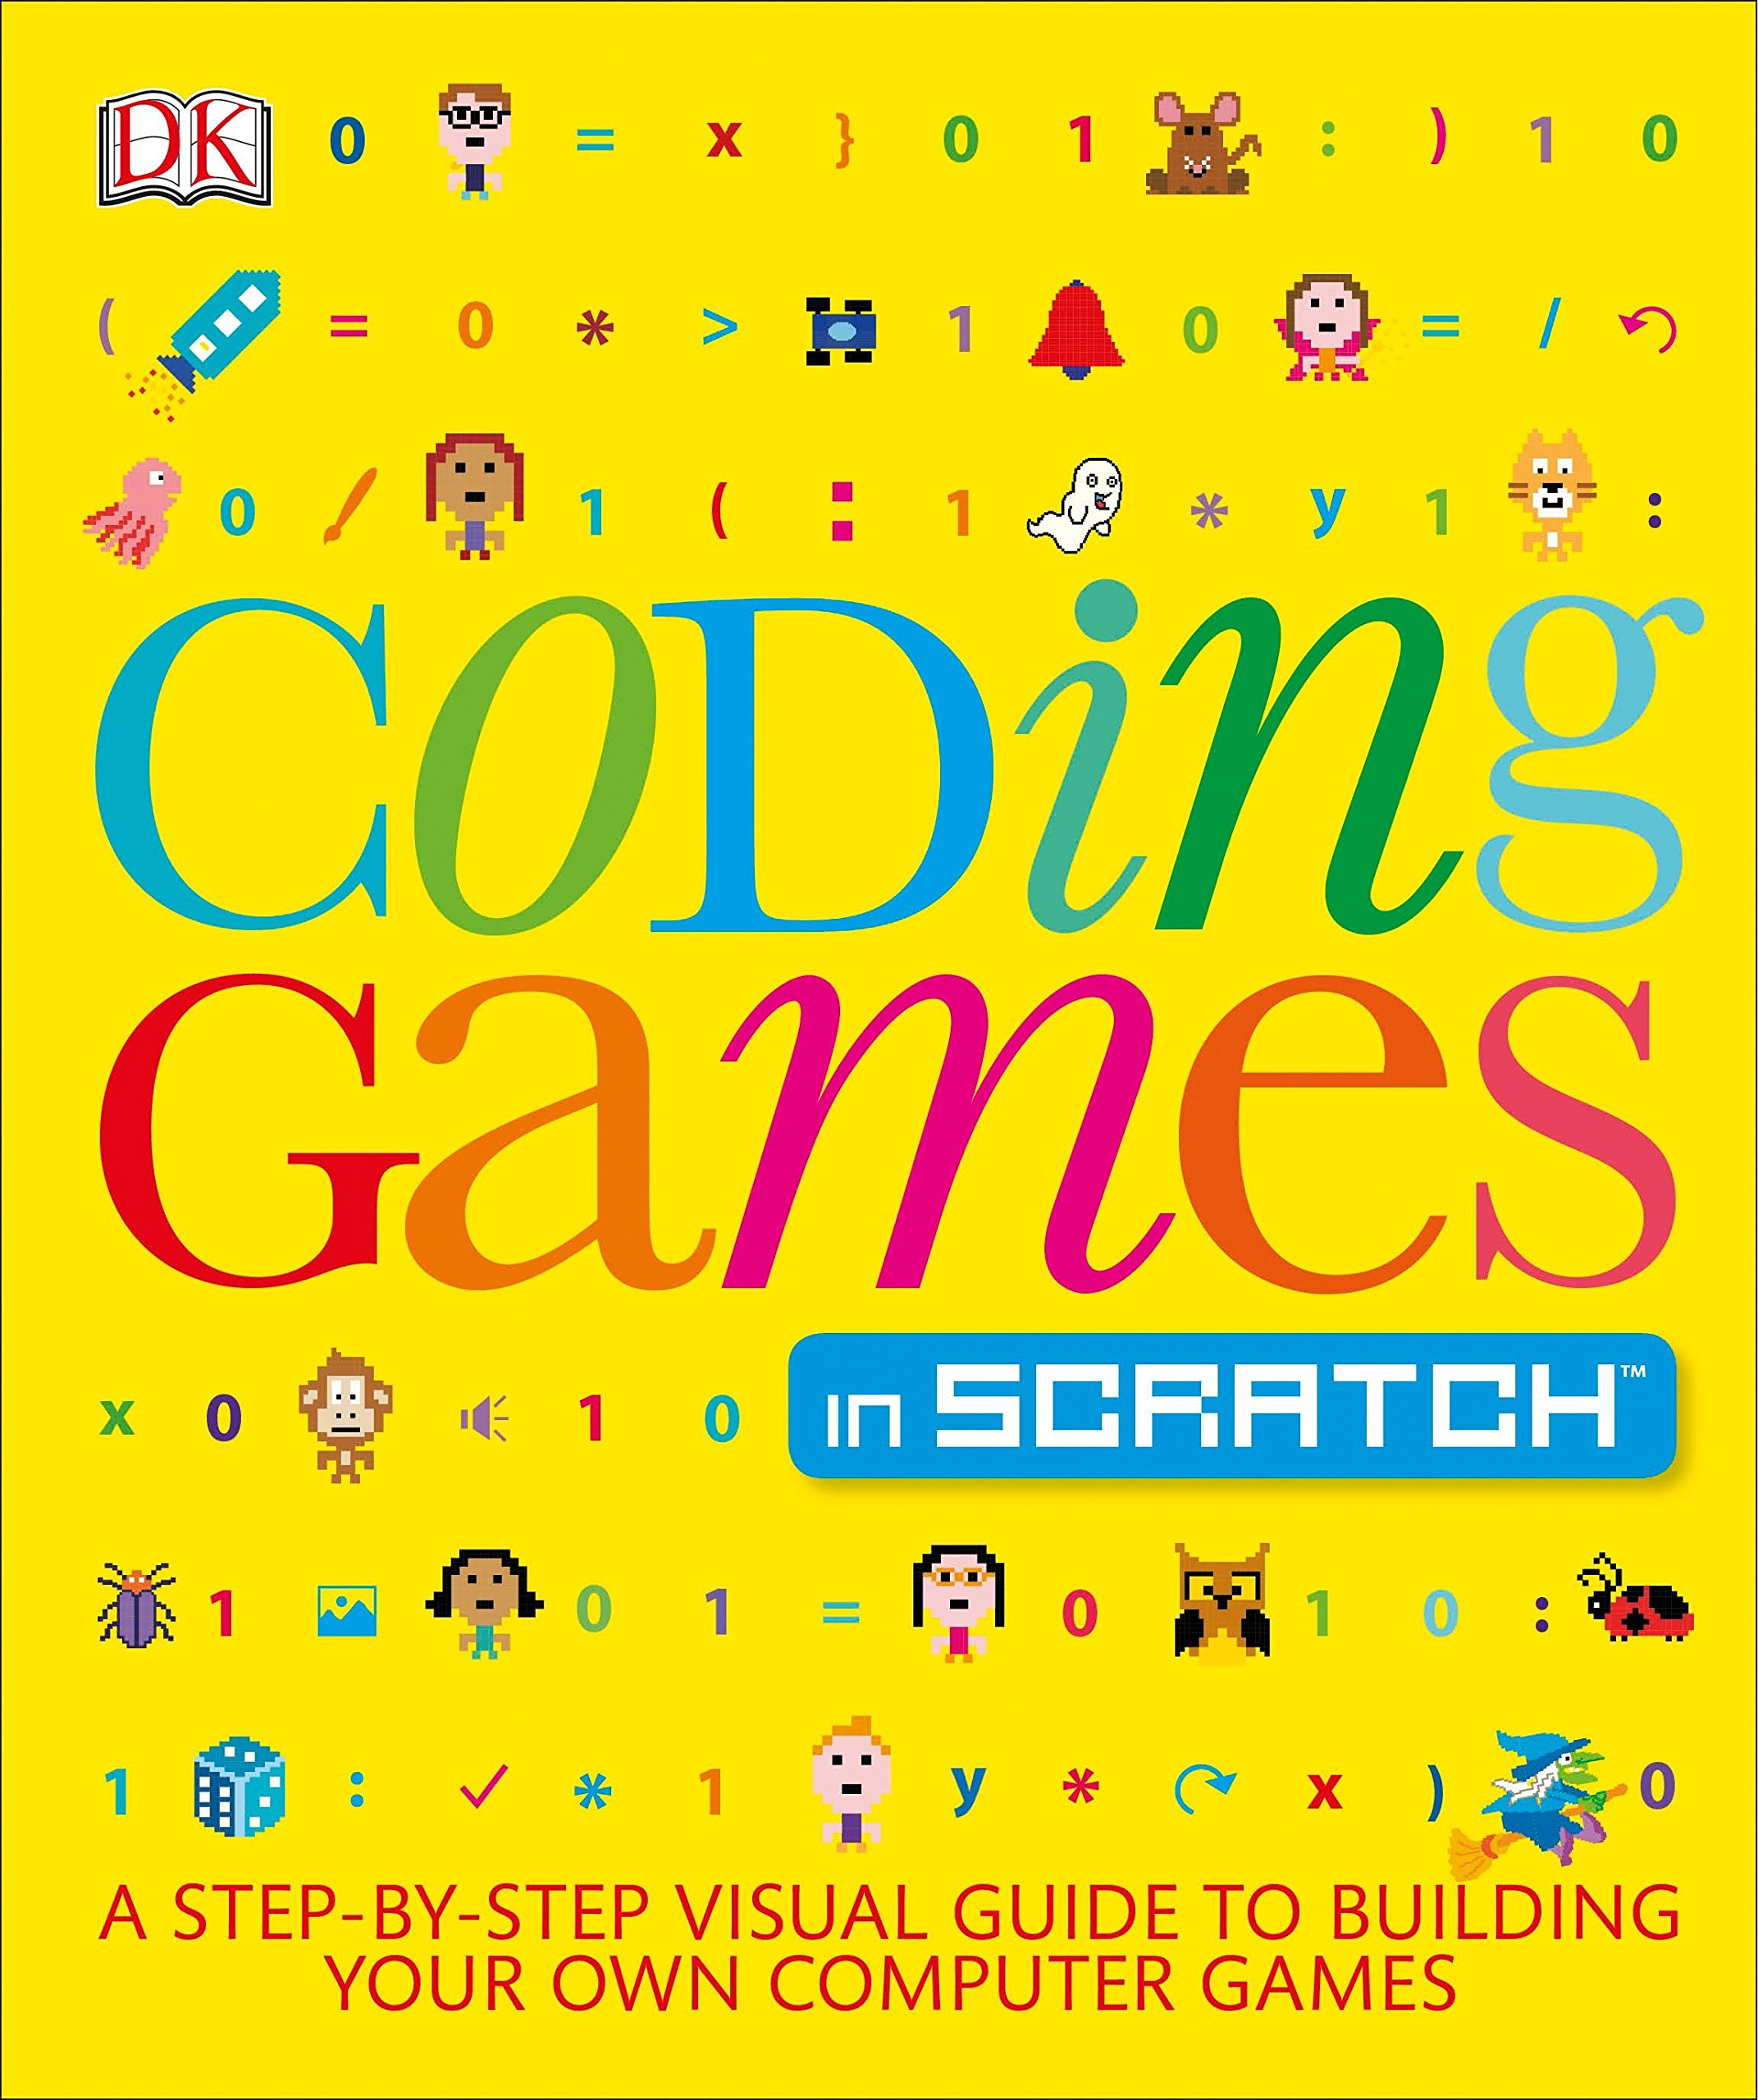 Coding Games in Scratch: A Step-by-Step Visual Guide to Building Your Own Computer Games by DK Publishing